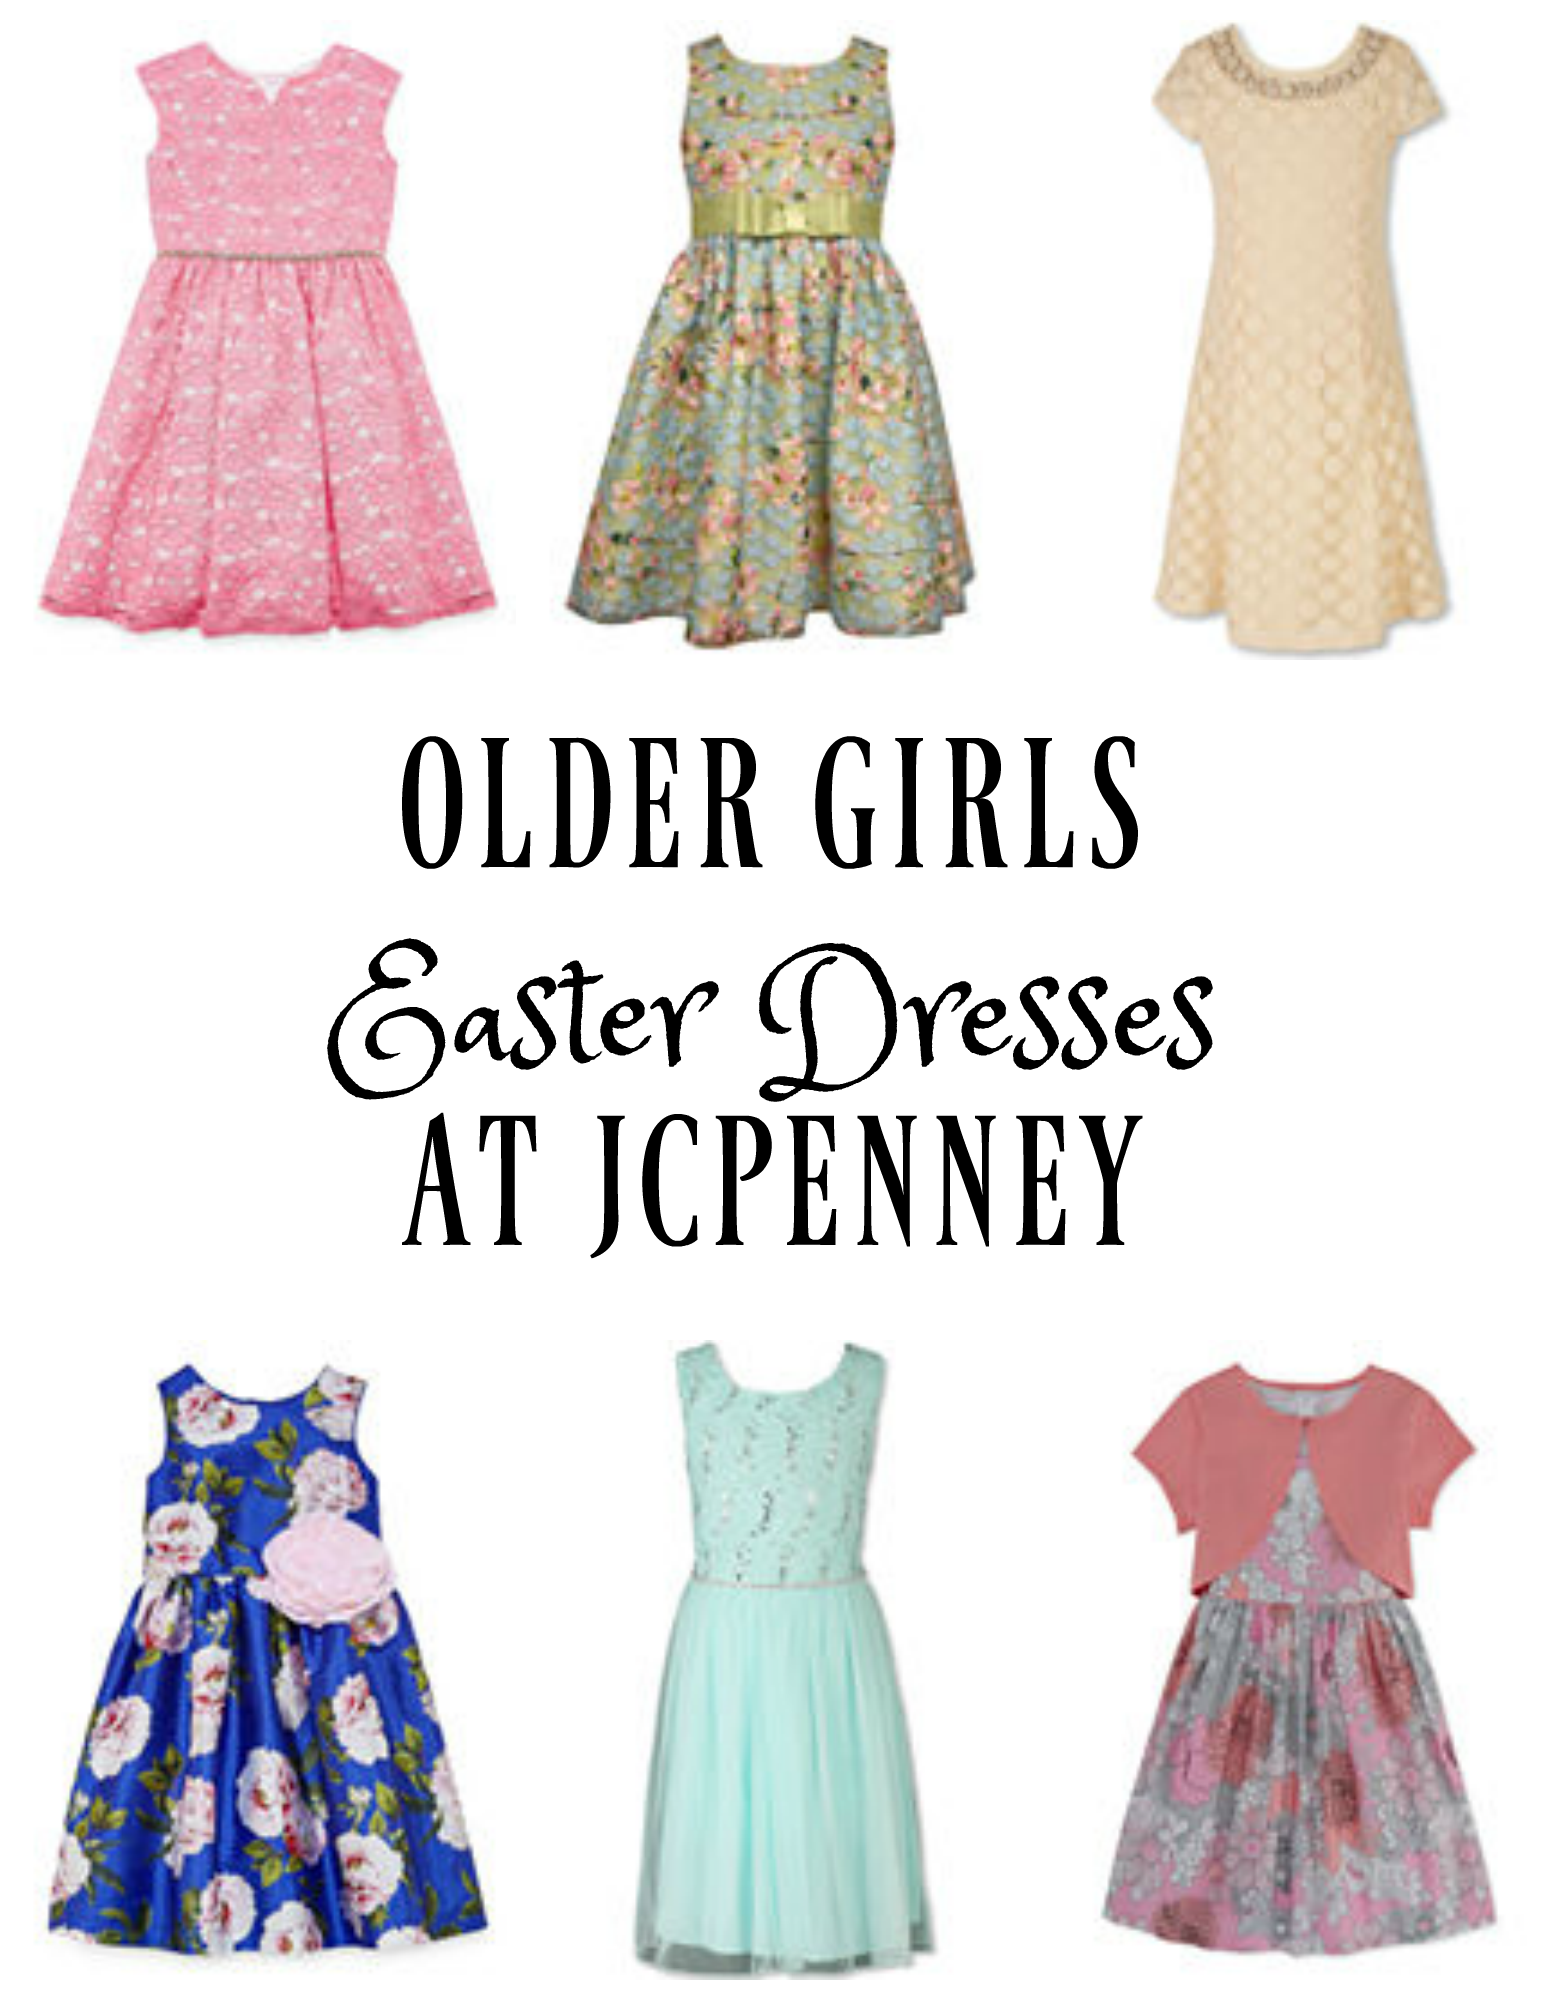 Jcpenney Christmas Dresses Girl pictures